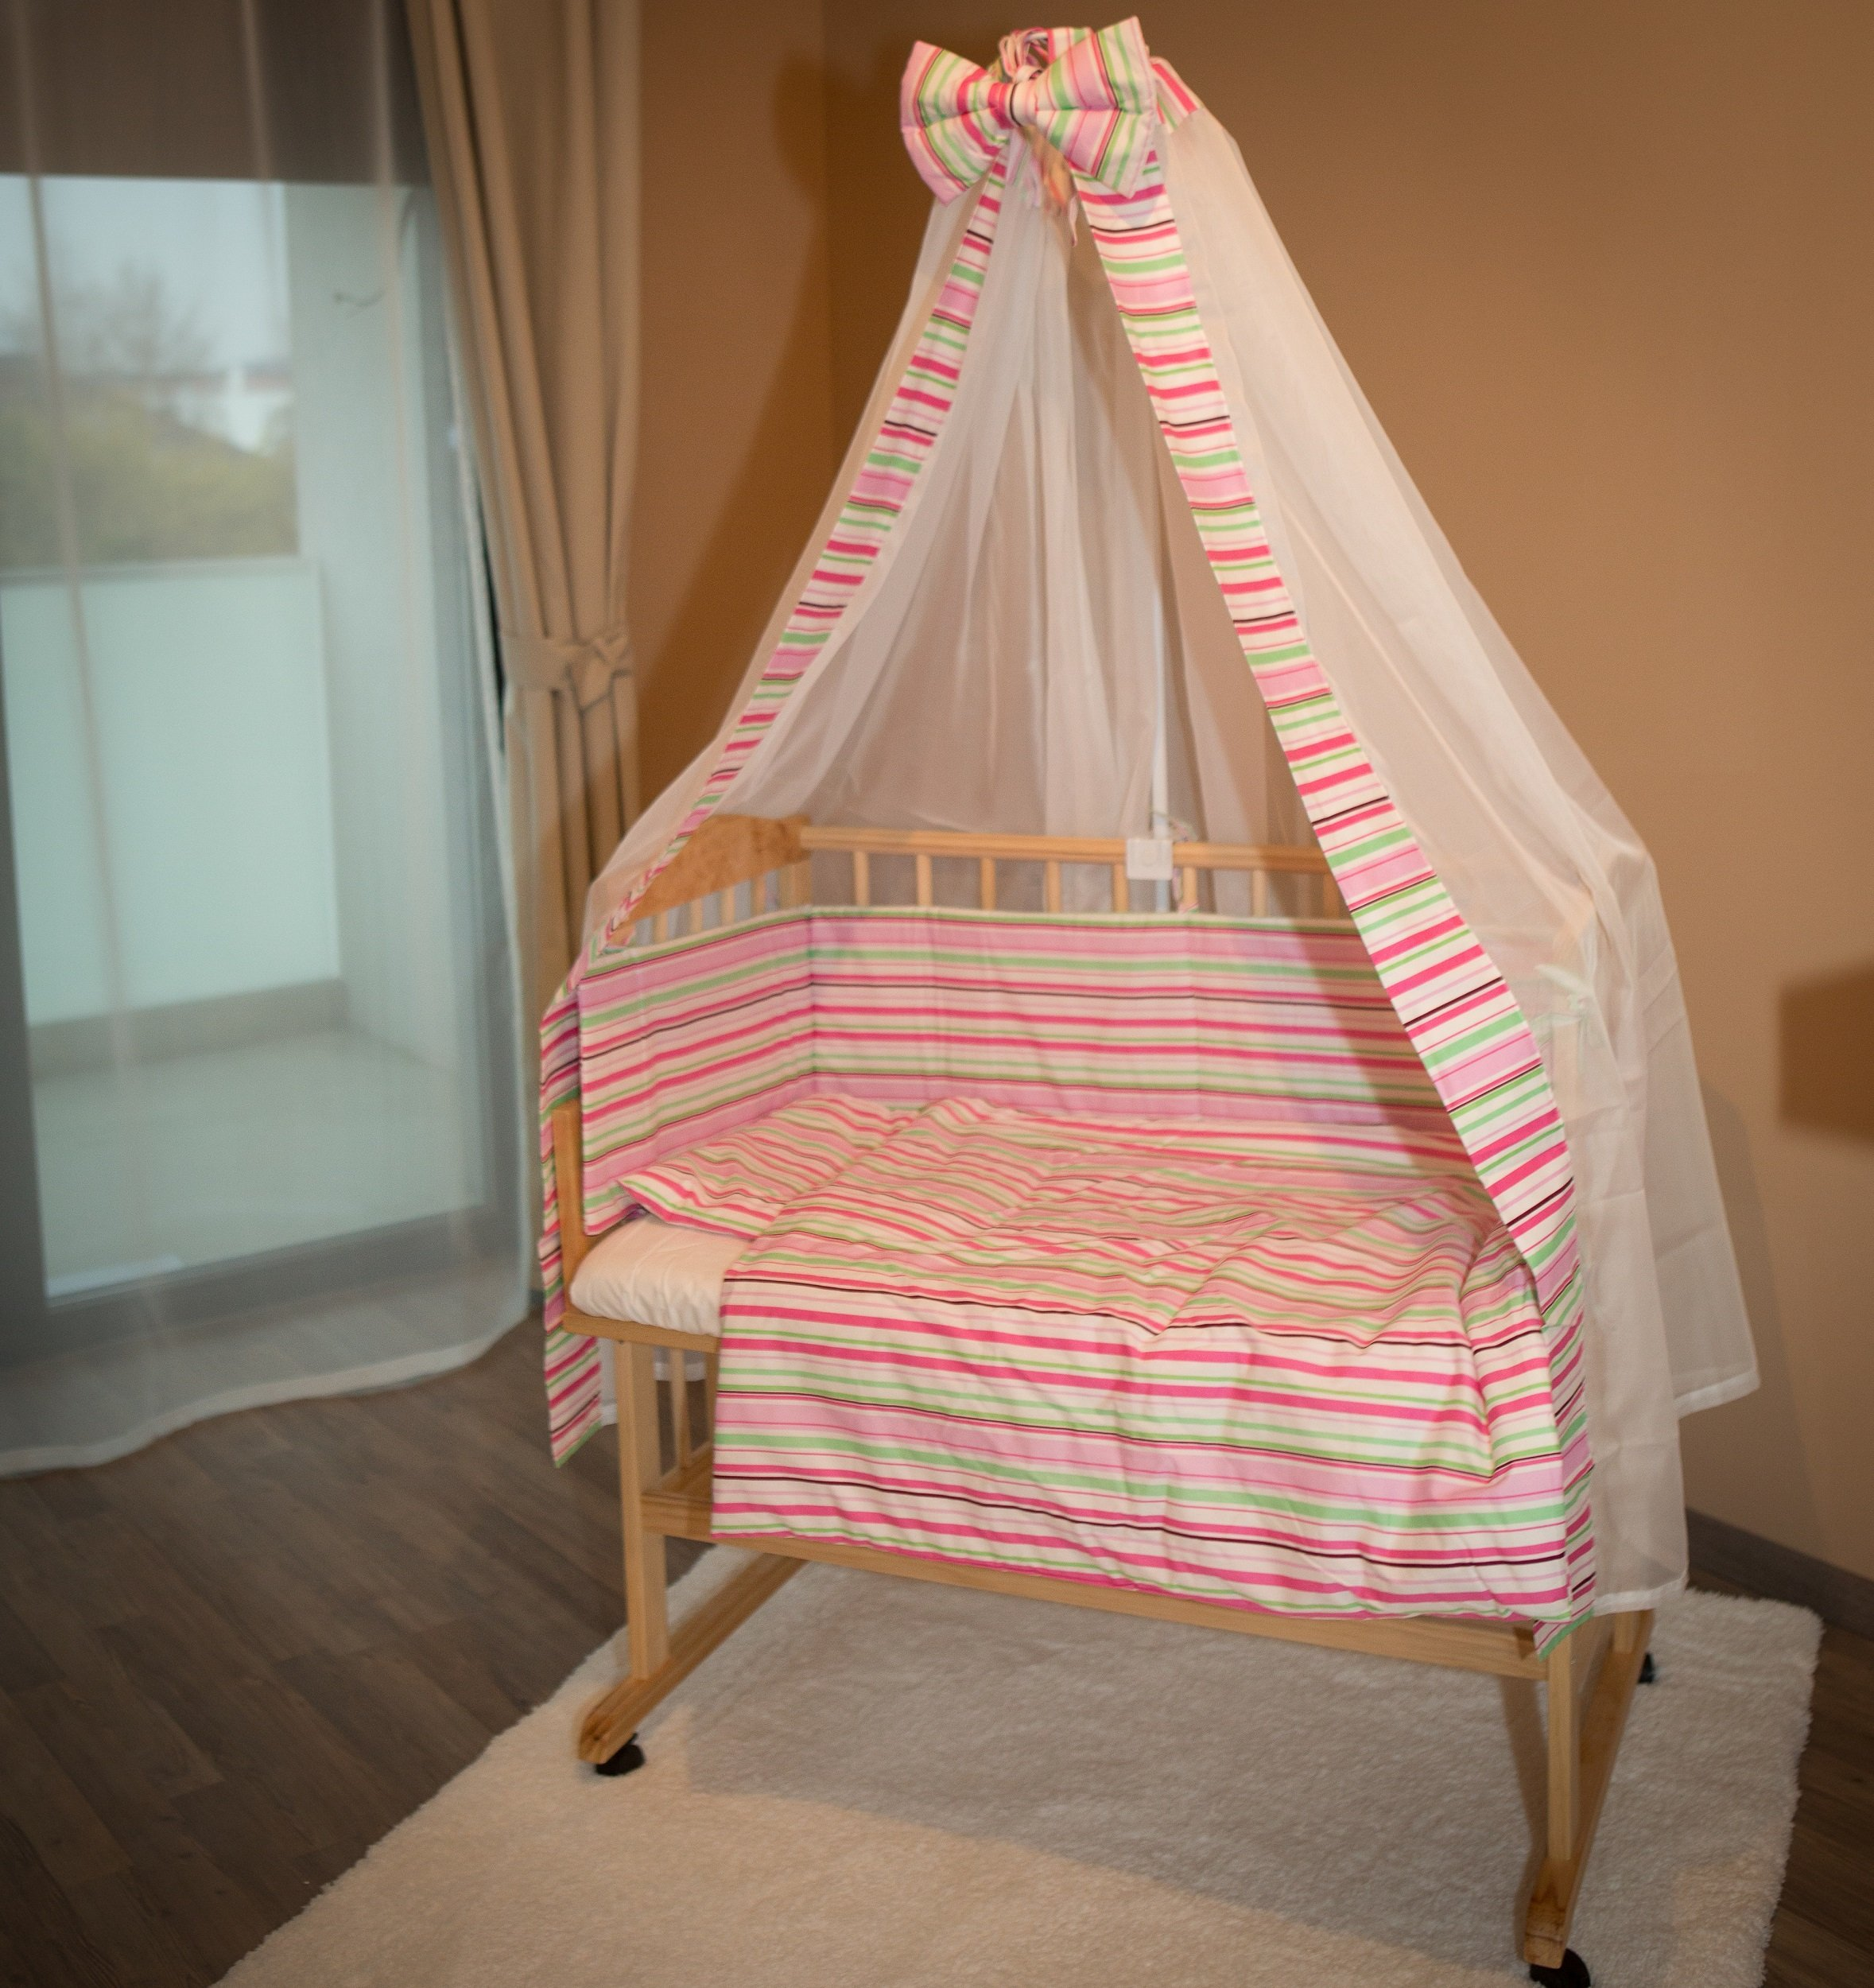 Bed side cot all inclusive 90x40cm, pink stripes Bambino World Main features:3 possible uses:Bed side cot (3 sides closed),Cot bed (4 sides closed),Child sofa;High quality pinewood;Height-adjustable duckboards;Inclusive bedlinen set, canopy and mattress; Bed side cot with large lying space 90 x 40 or 90 x 55cm (if you use the included additional board);Made of high-quality pinewood, clear-varnished with saliva-resistant toy´s paint with a high proportion of wax;Inclusive additional lateral part for use as a cot bed;Height-adjustable duckboards from 17 to 46cm to fit to the height of the parent´s bed; 4 movable castors, 2 with a brake;Overall dimensions 93 x 44/56 x 81cm; Accessories included in our offer:Mattress:High quality mattresses: soft foam polyurethane,Dimensions: 90 x (40+15)cm,Mattress cover: 100% cotton,Quilted on one side with washable fabric,Removable, machine washable at 60°C, 1